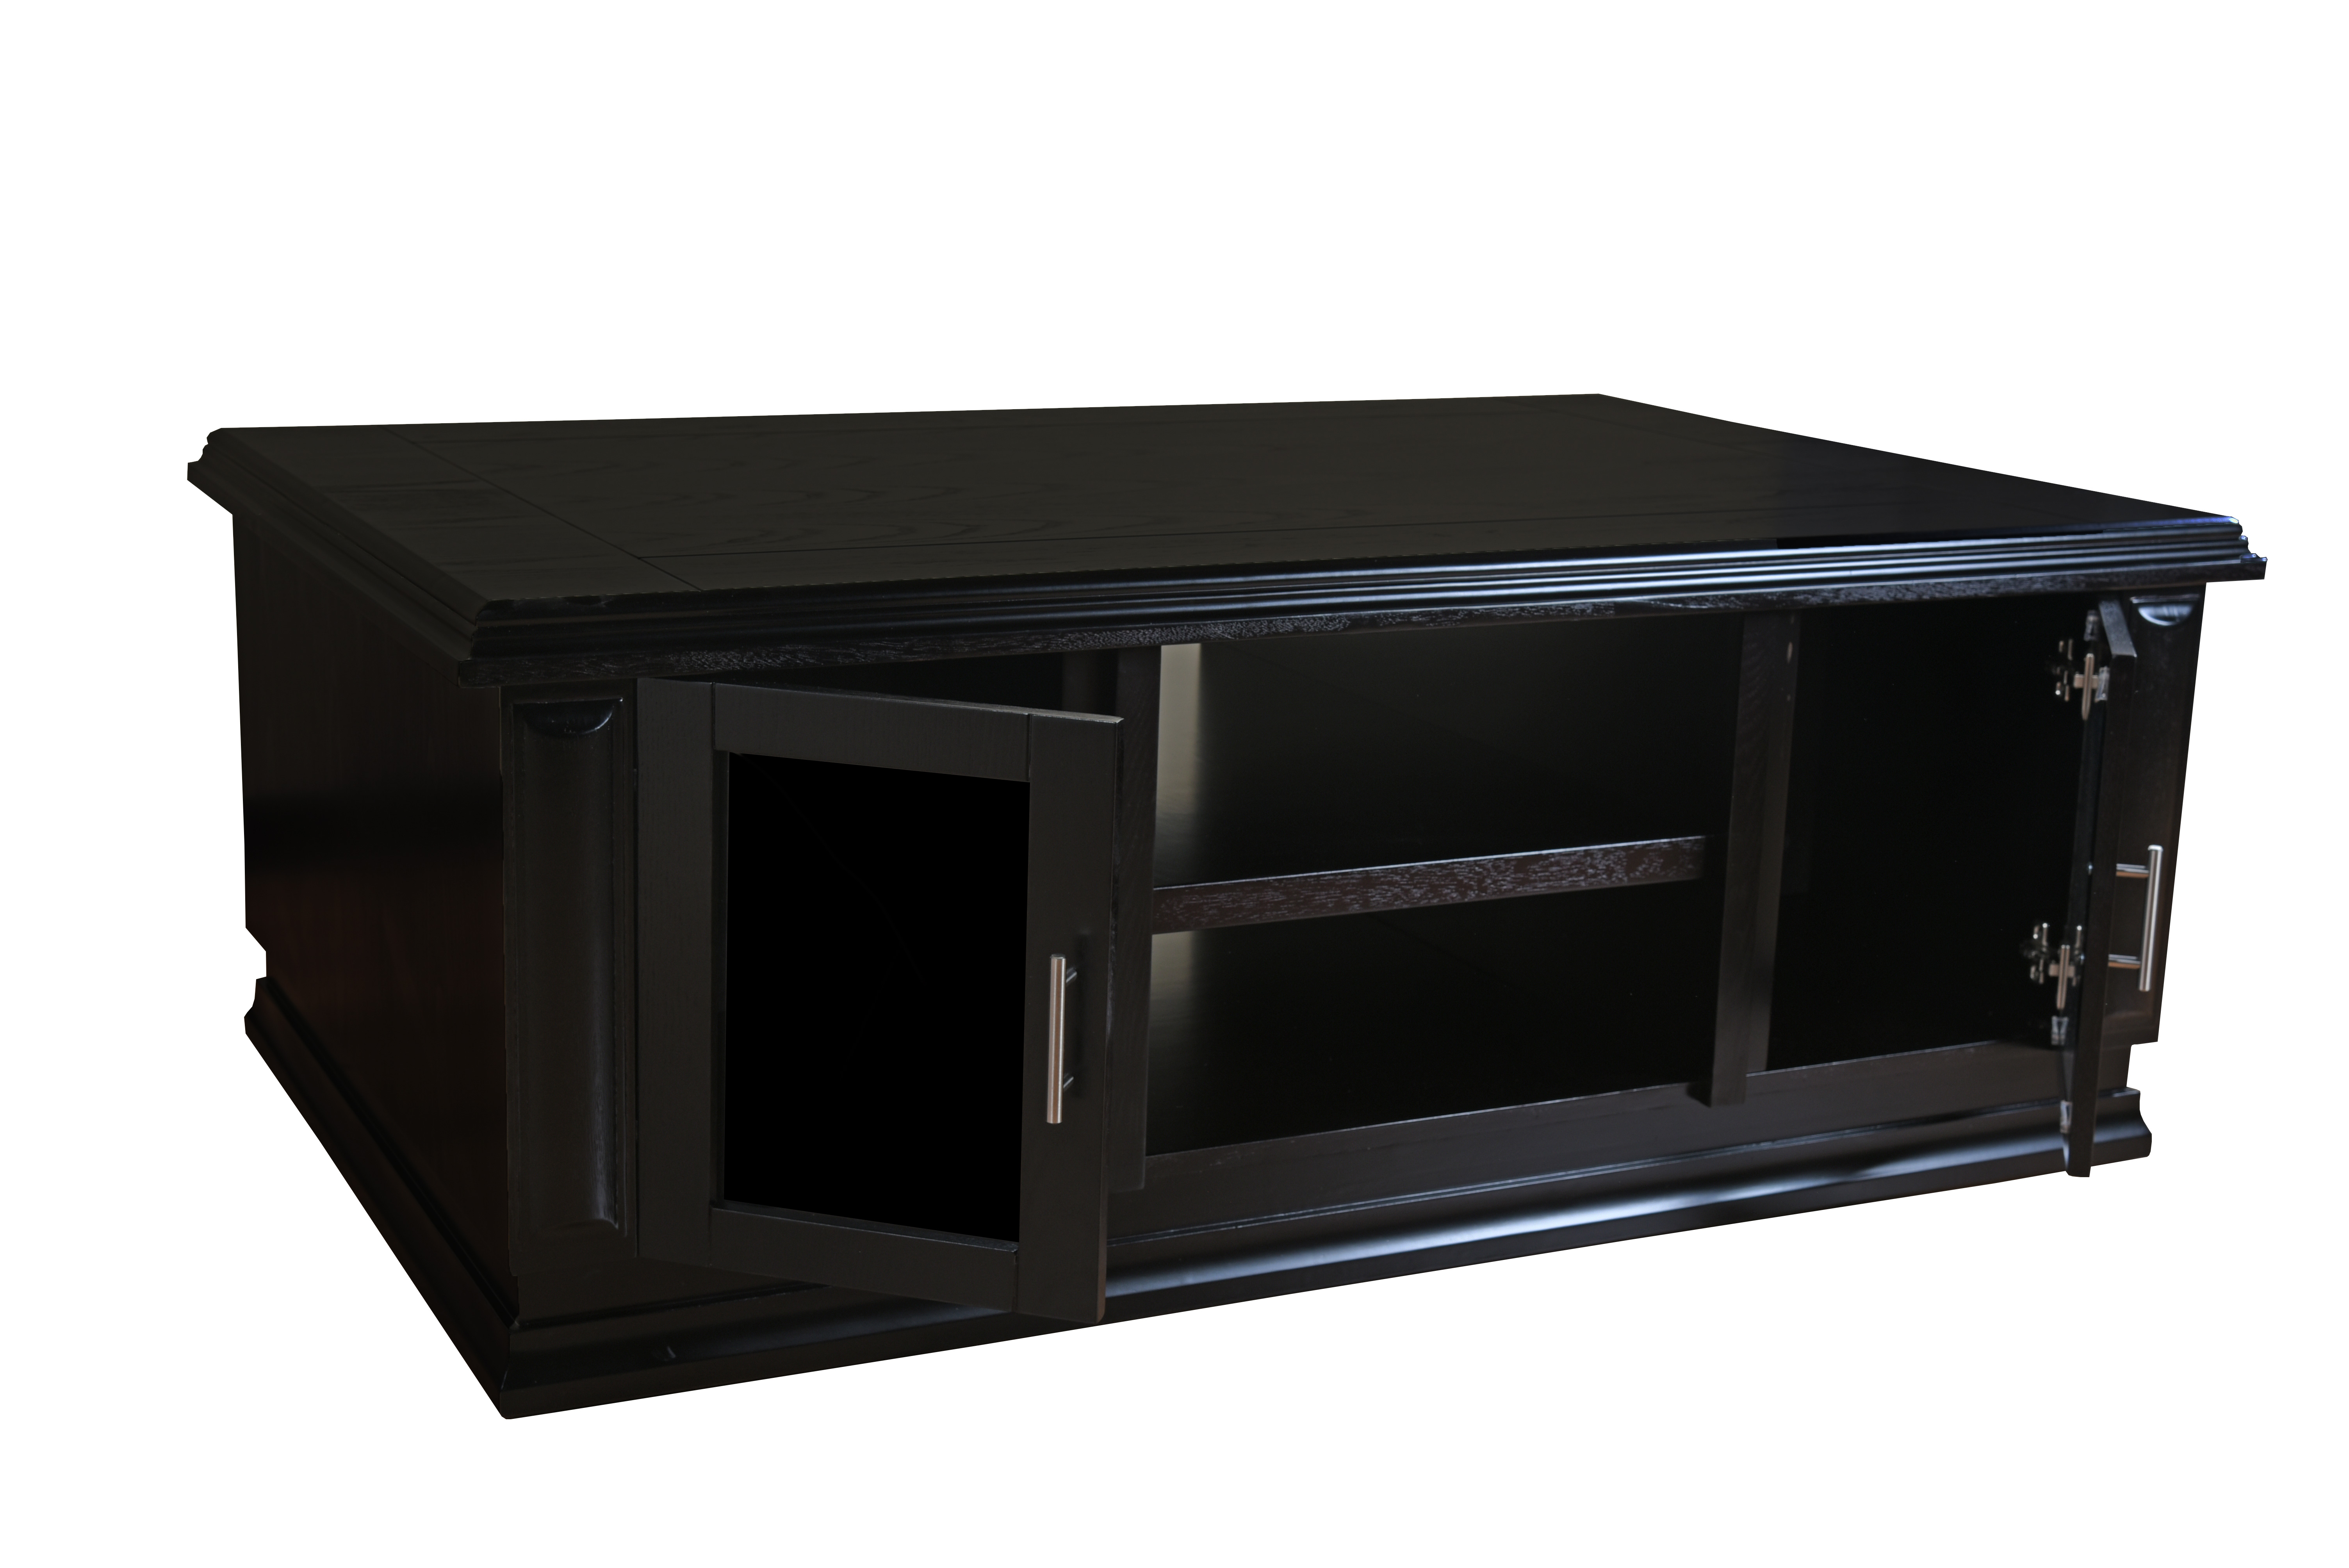 Sev069 coffee table coffee table coffee tables for for Coffee tables jhb